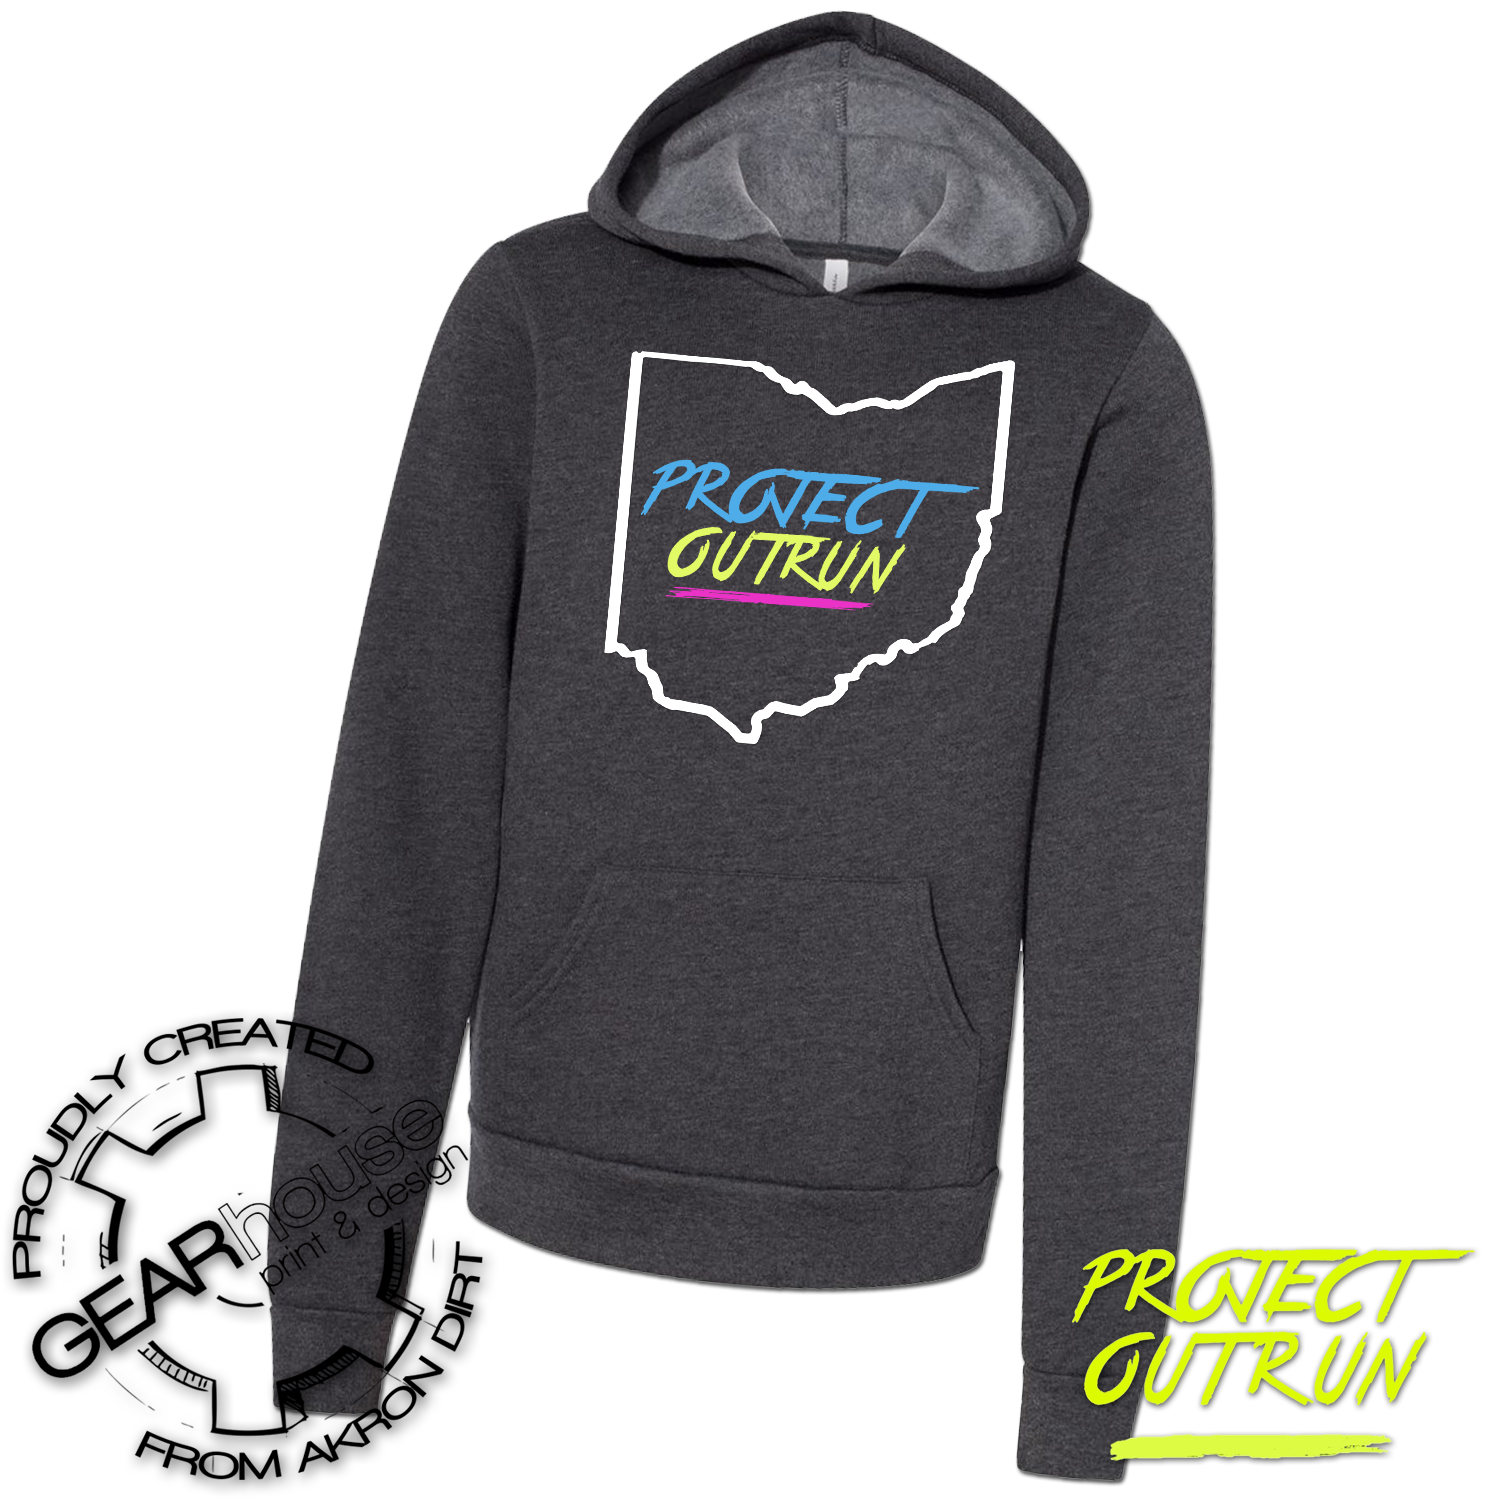 Project Outrun Youth Hoodie